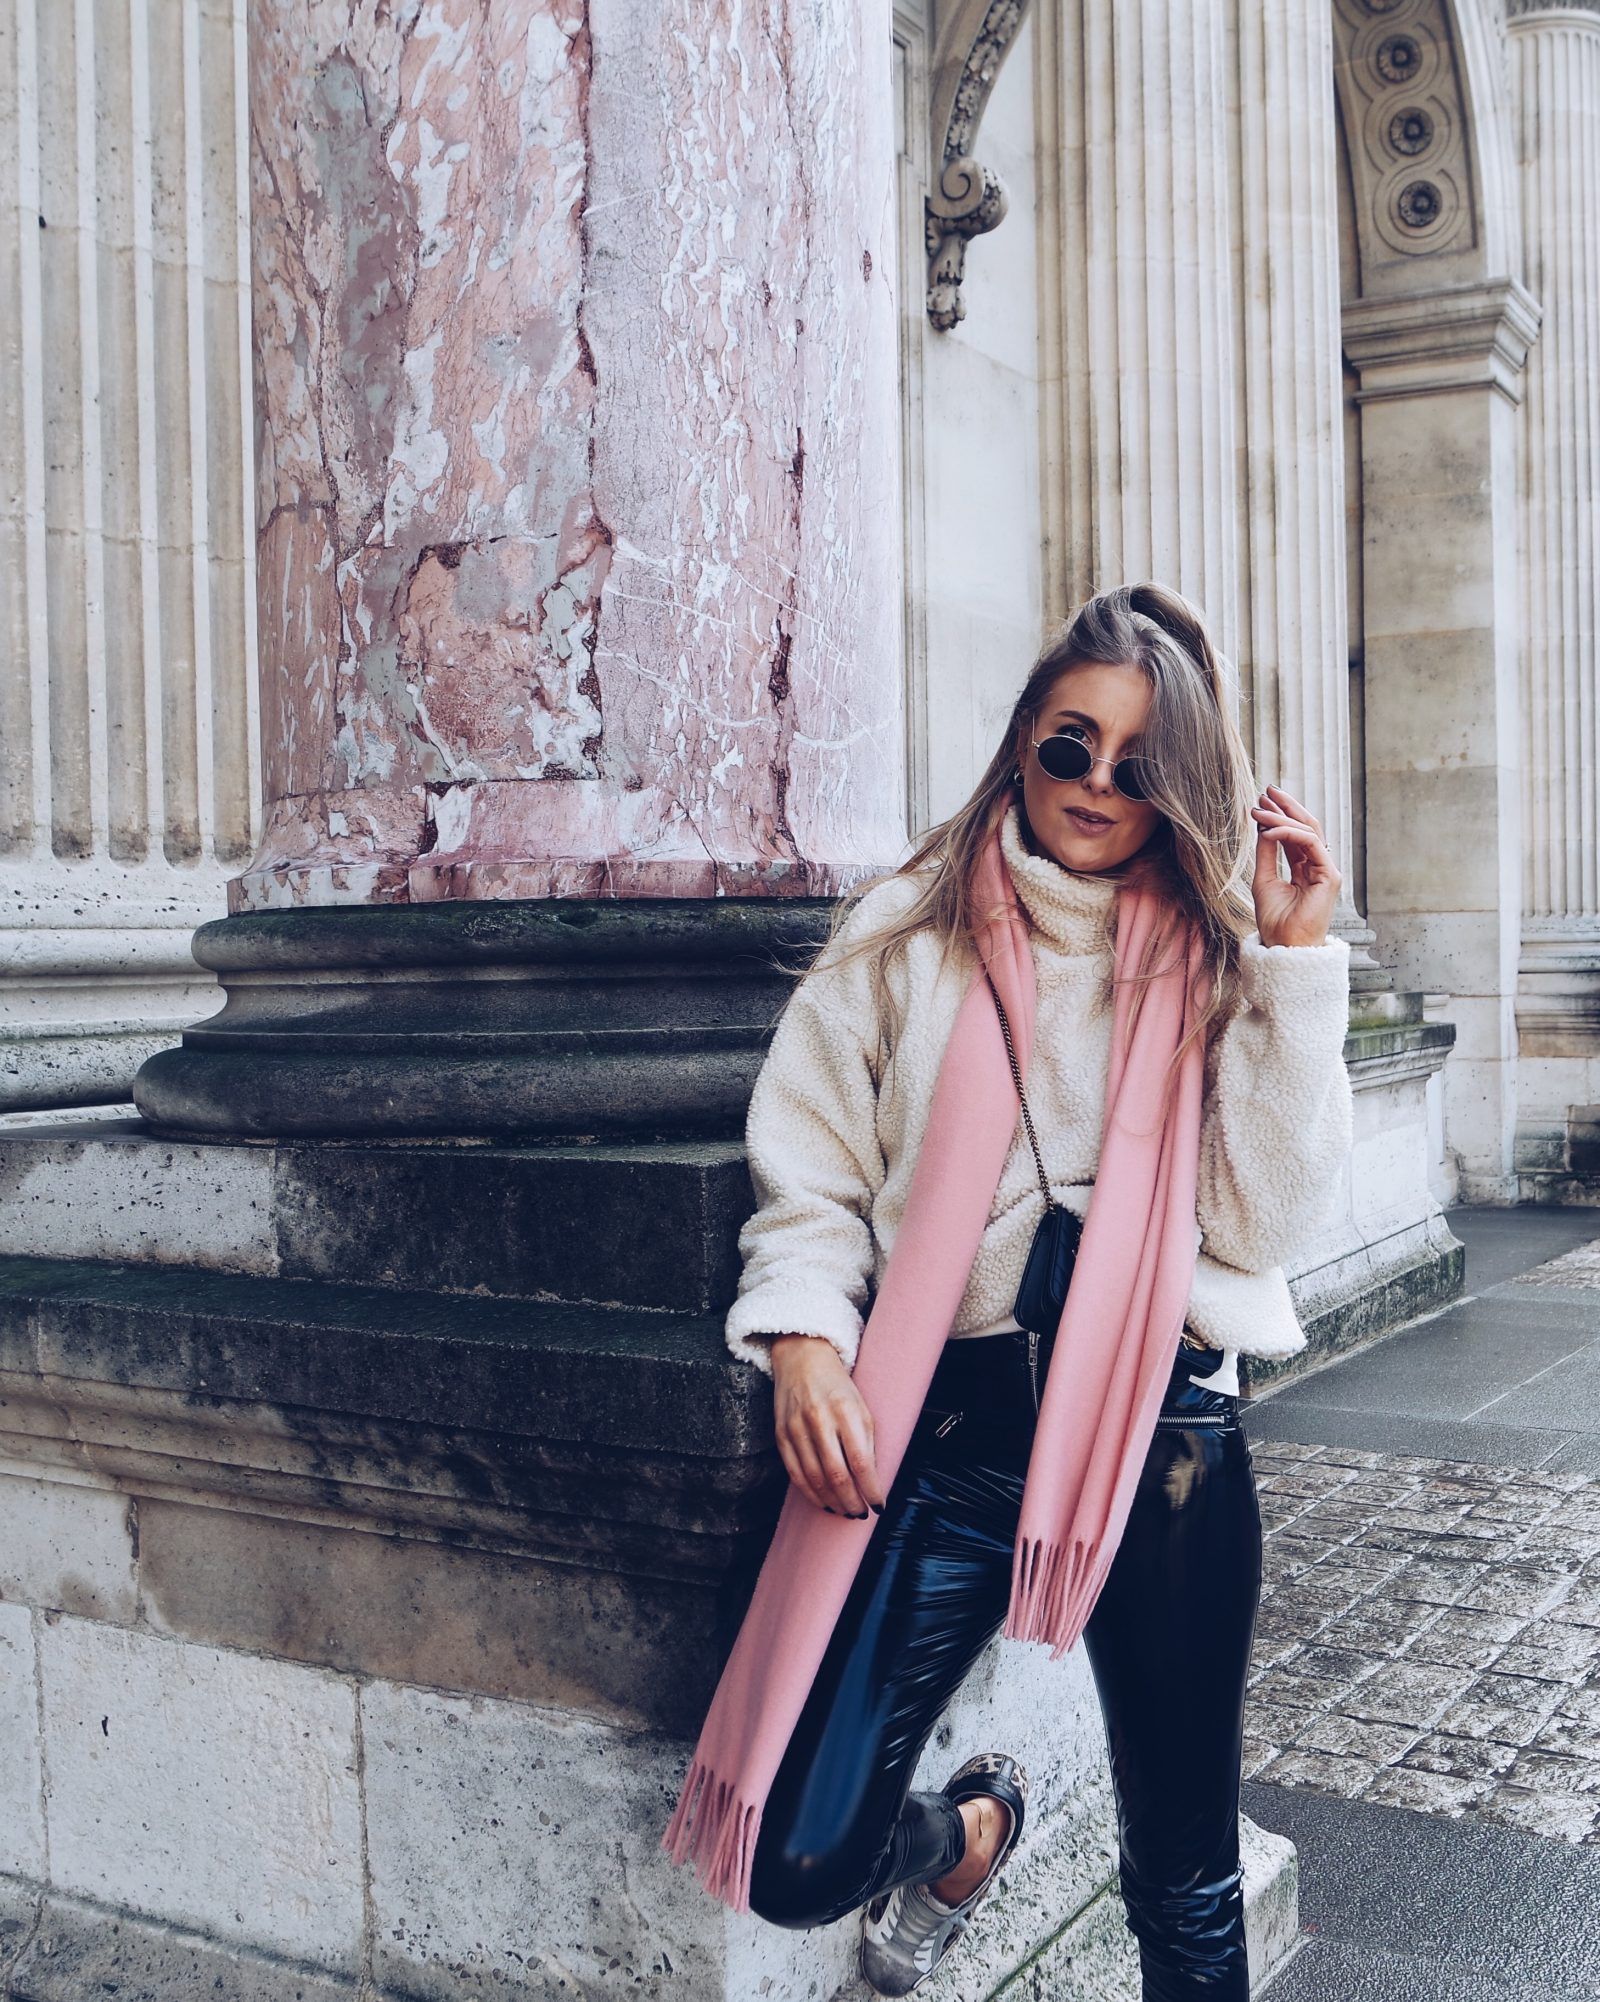 Vinyl Trousers - Pink Acne Scarf